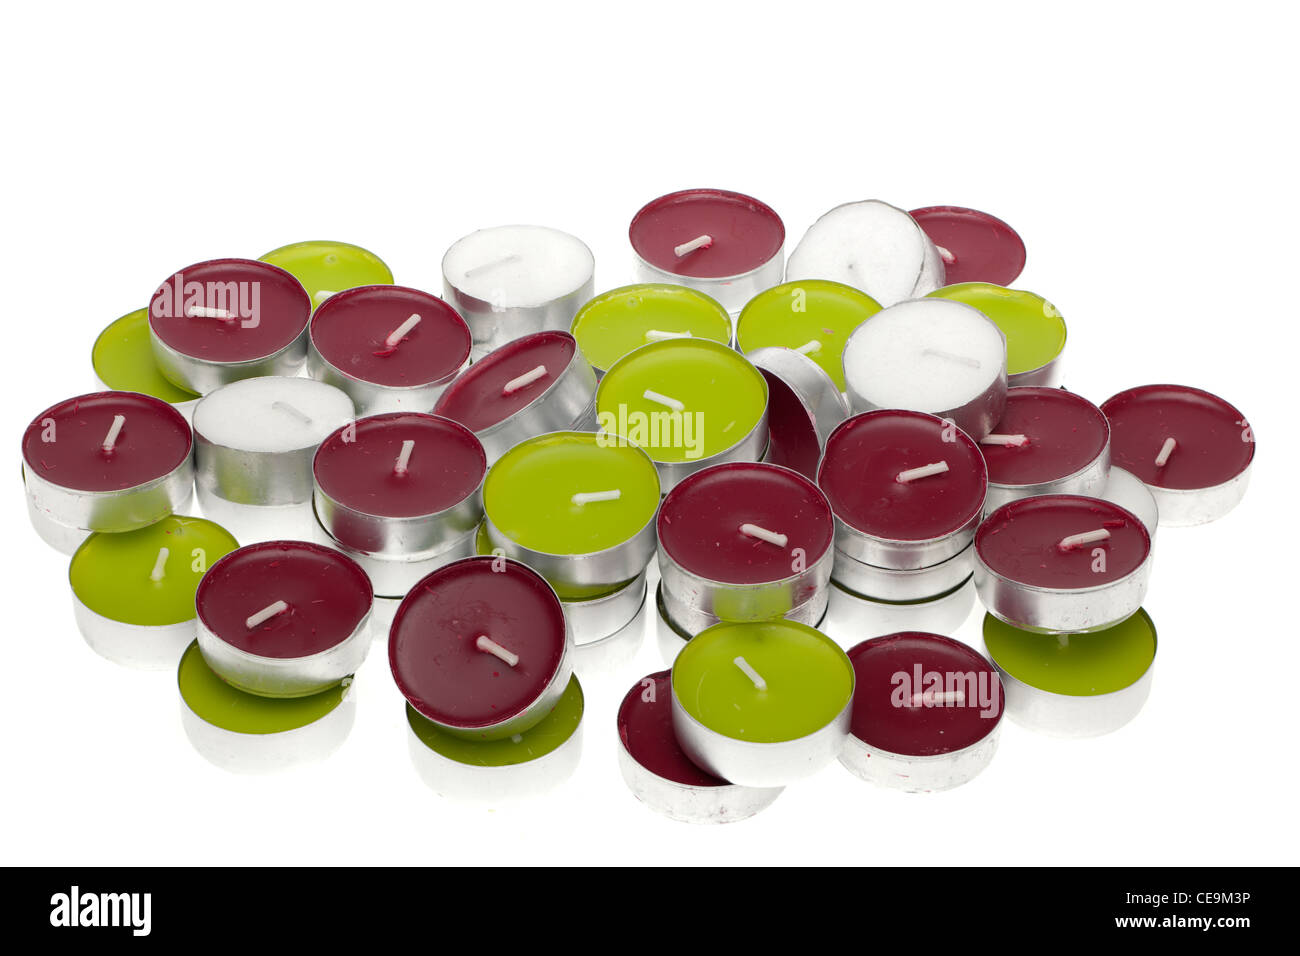 Pile of assorted tea lights candles - Stock Image